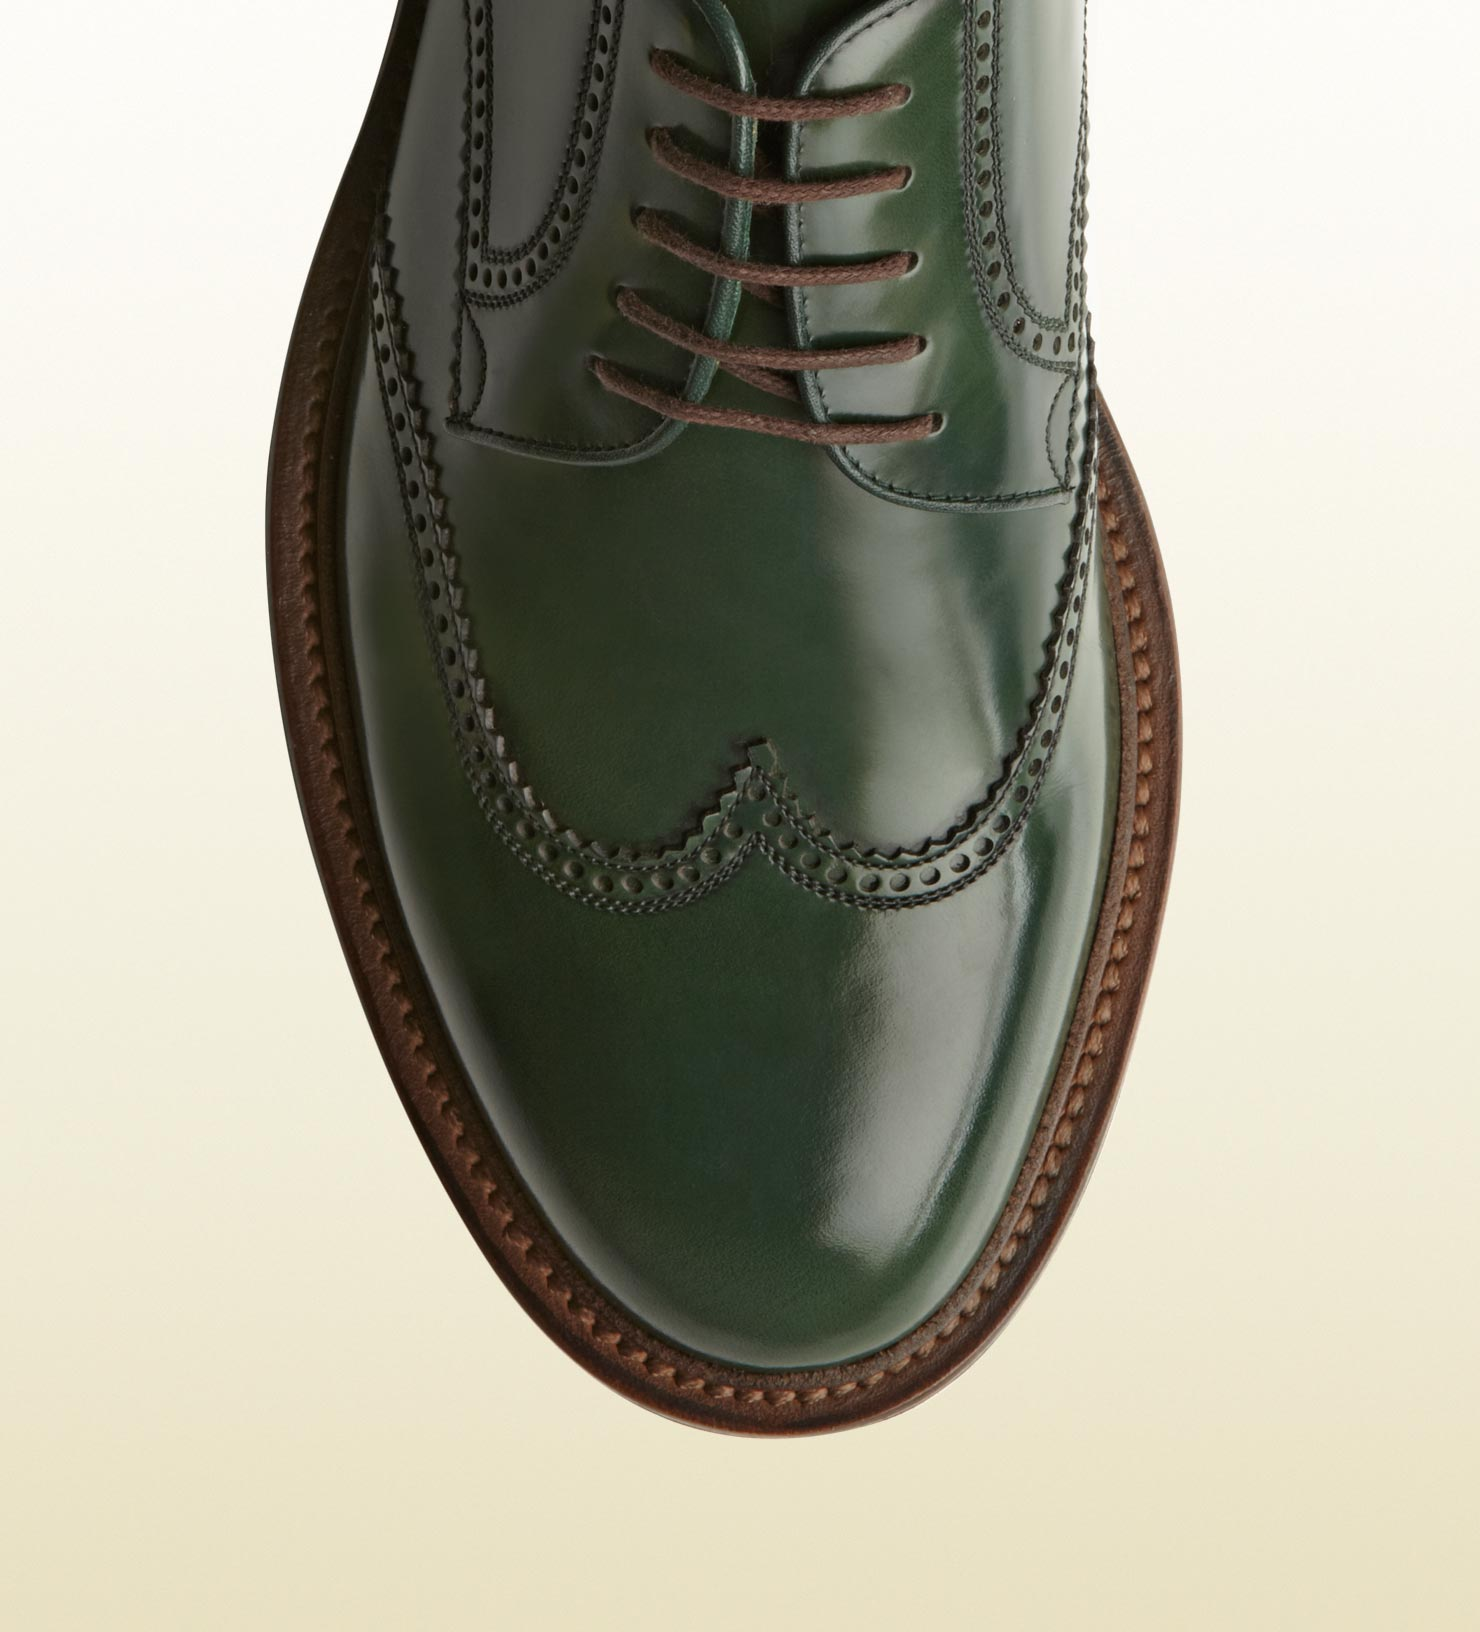 641a1dba5cfe4 Men For Laceup Lyst Green Shoe Gucci Brogue In 6YFqfO0